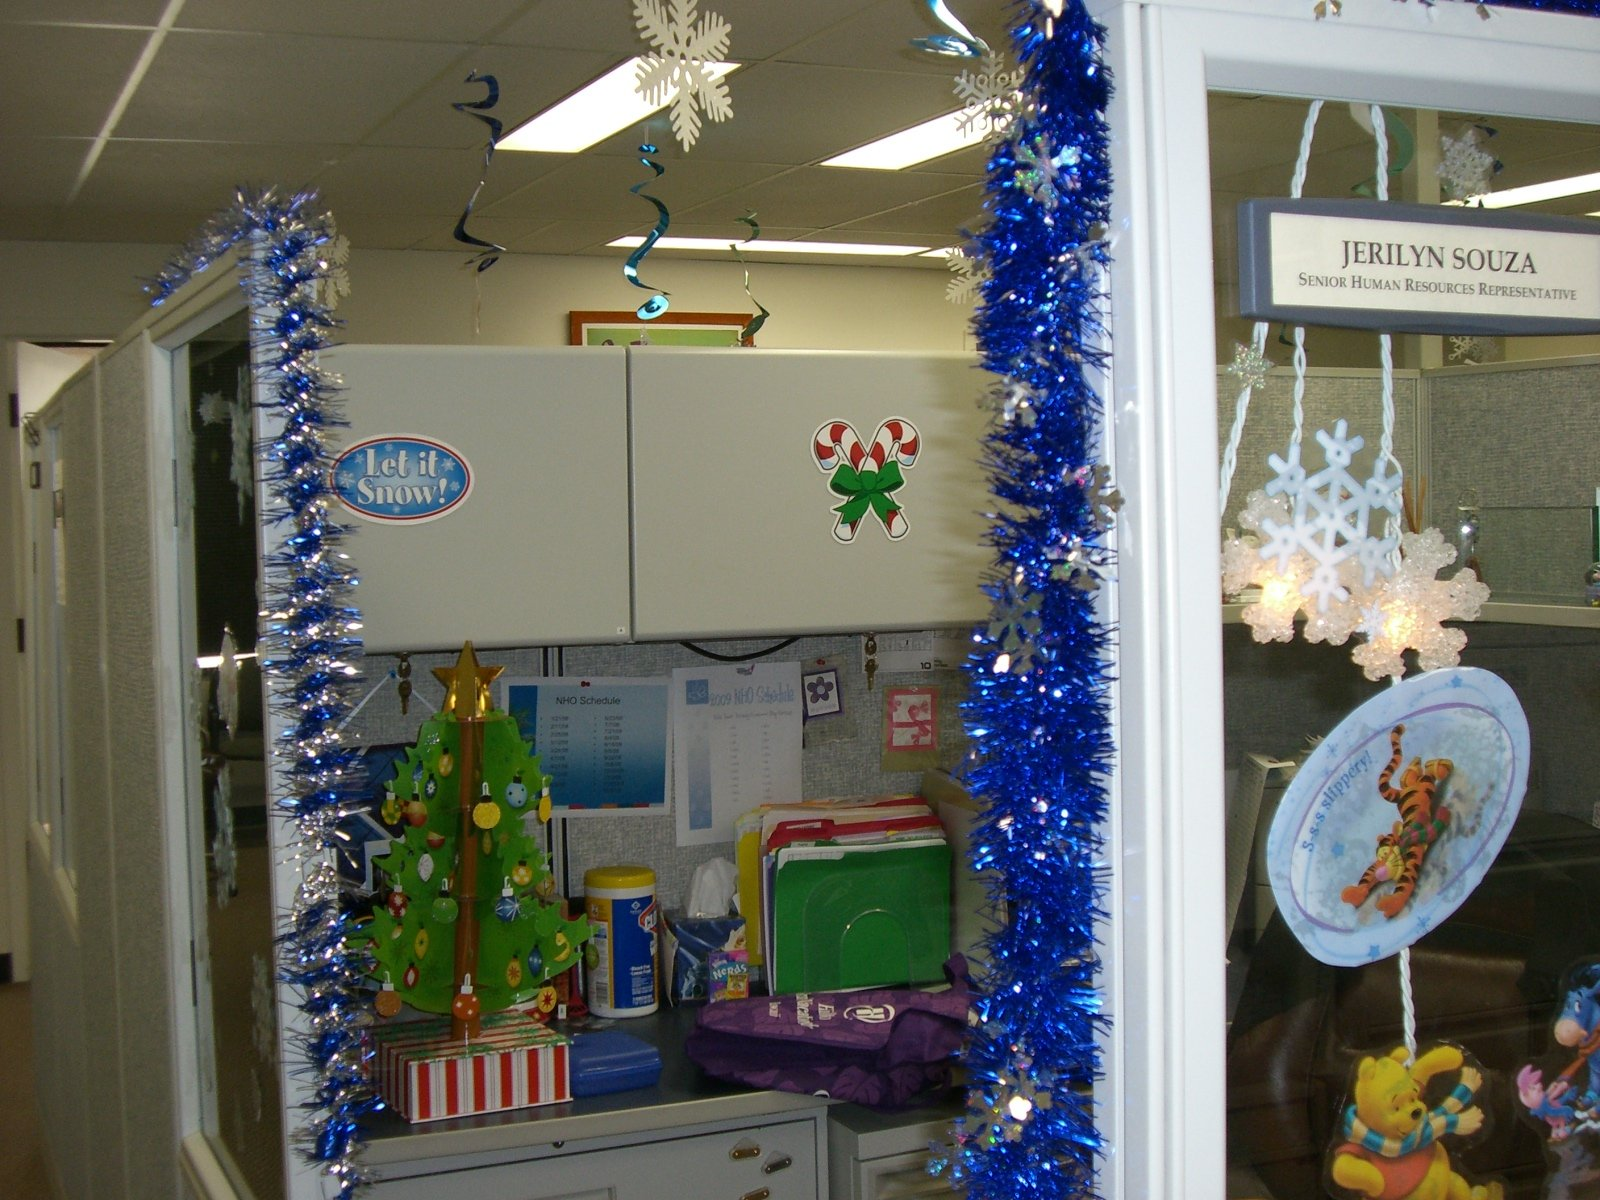 Office Christmas Decorating Ideas All About Christmas - Christmas theme decorating ideas